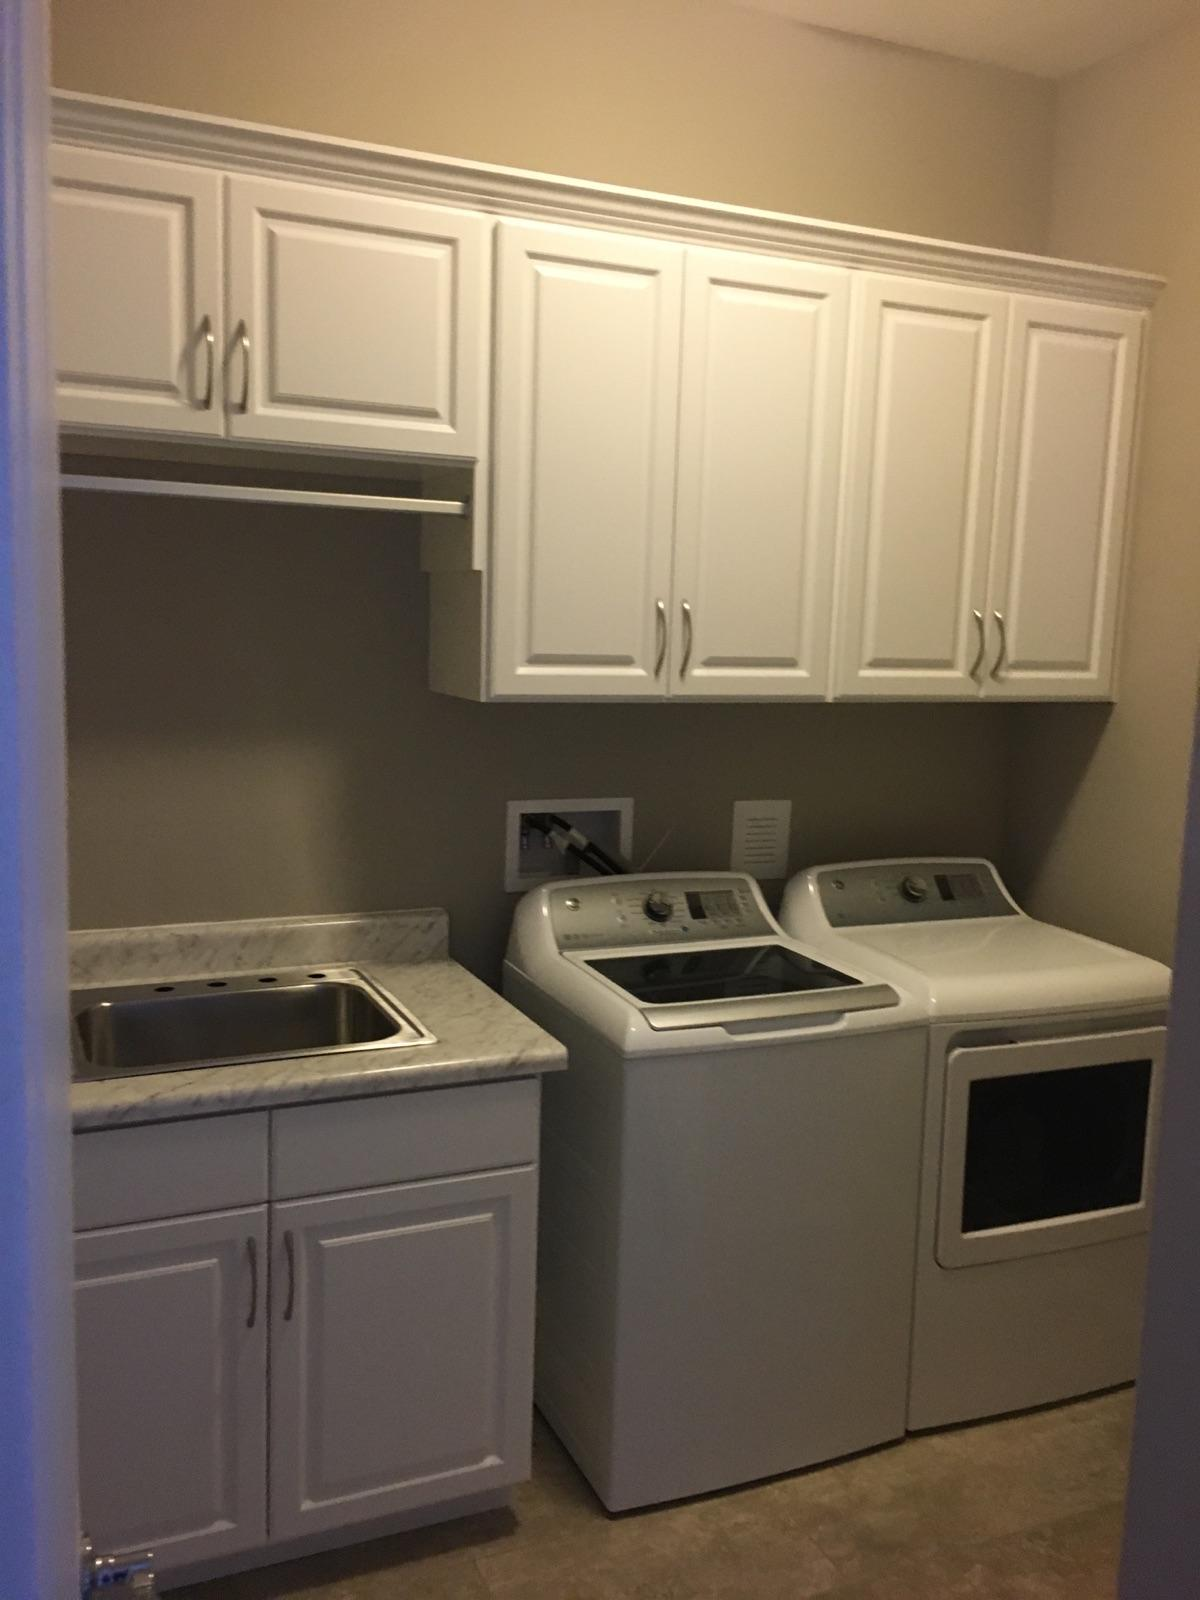 Pantry and Laundry